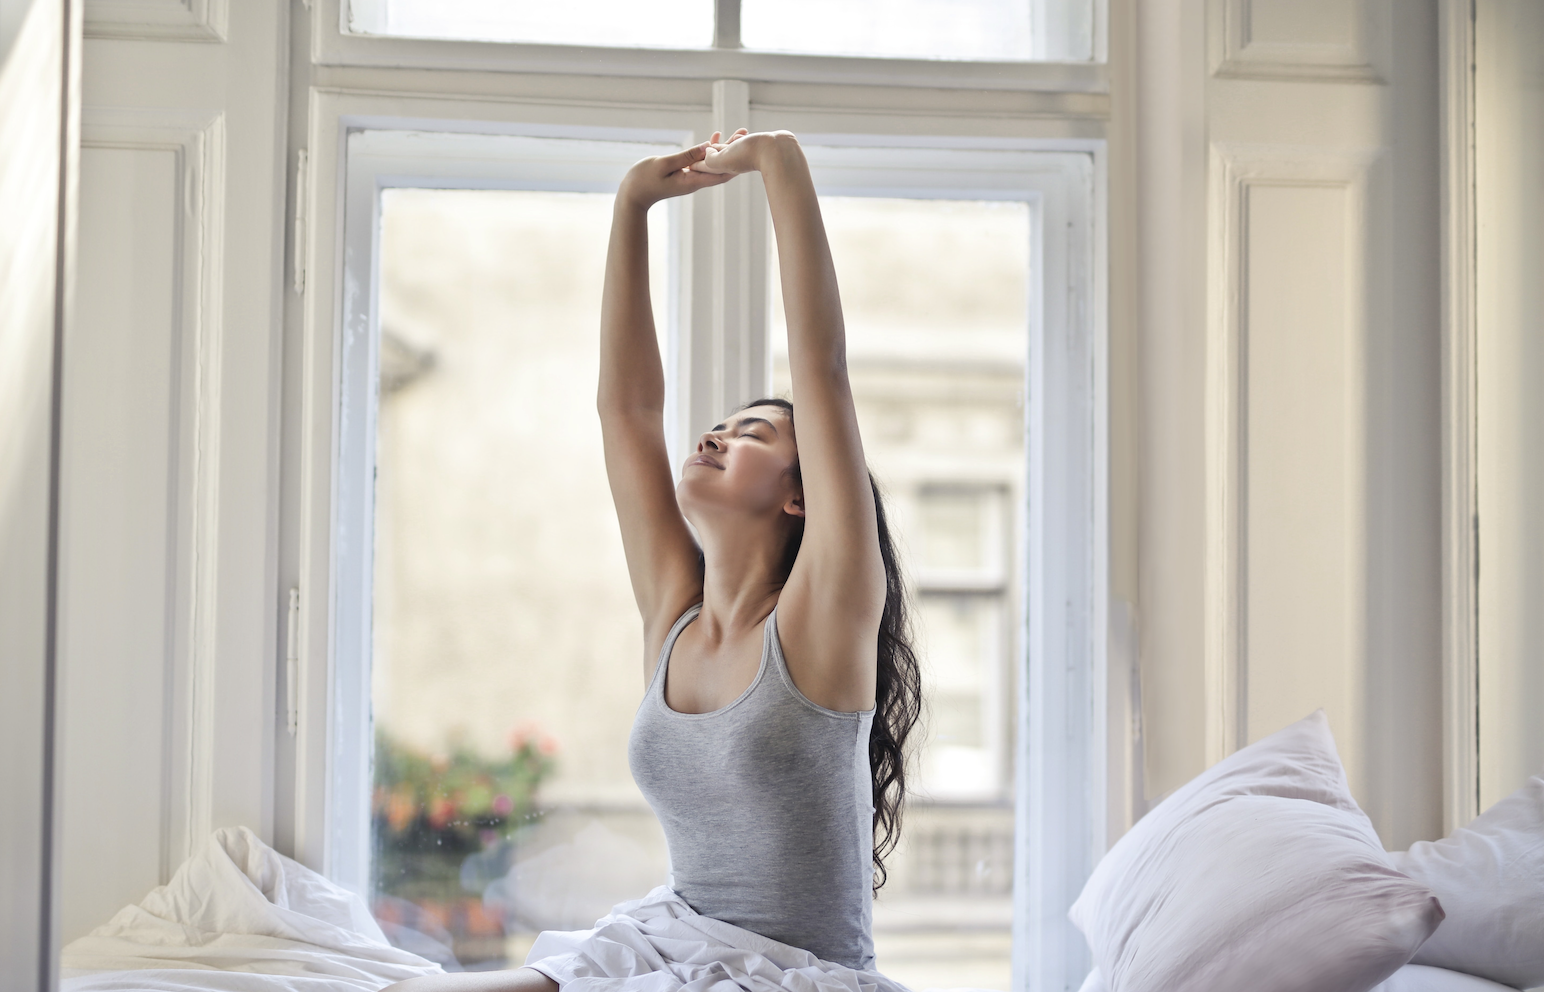 Woman waking up in Tripalink bedroom and streching